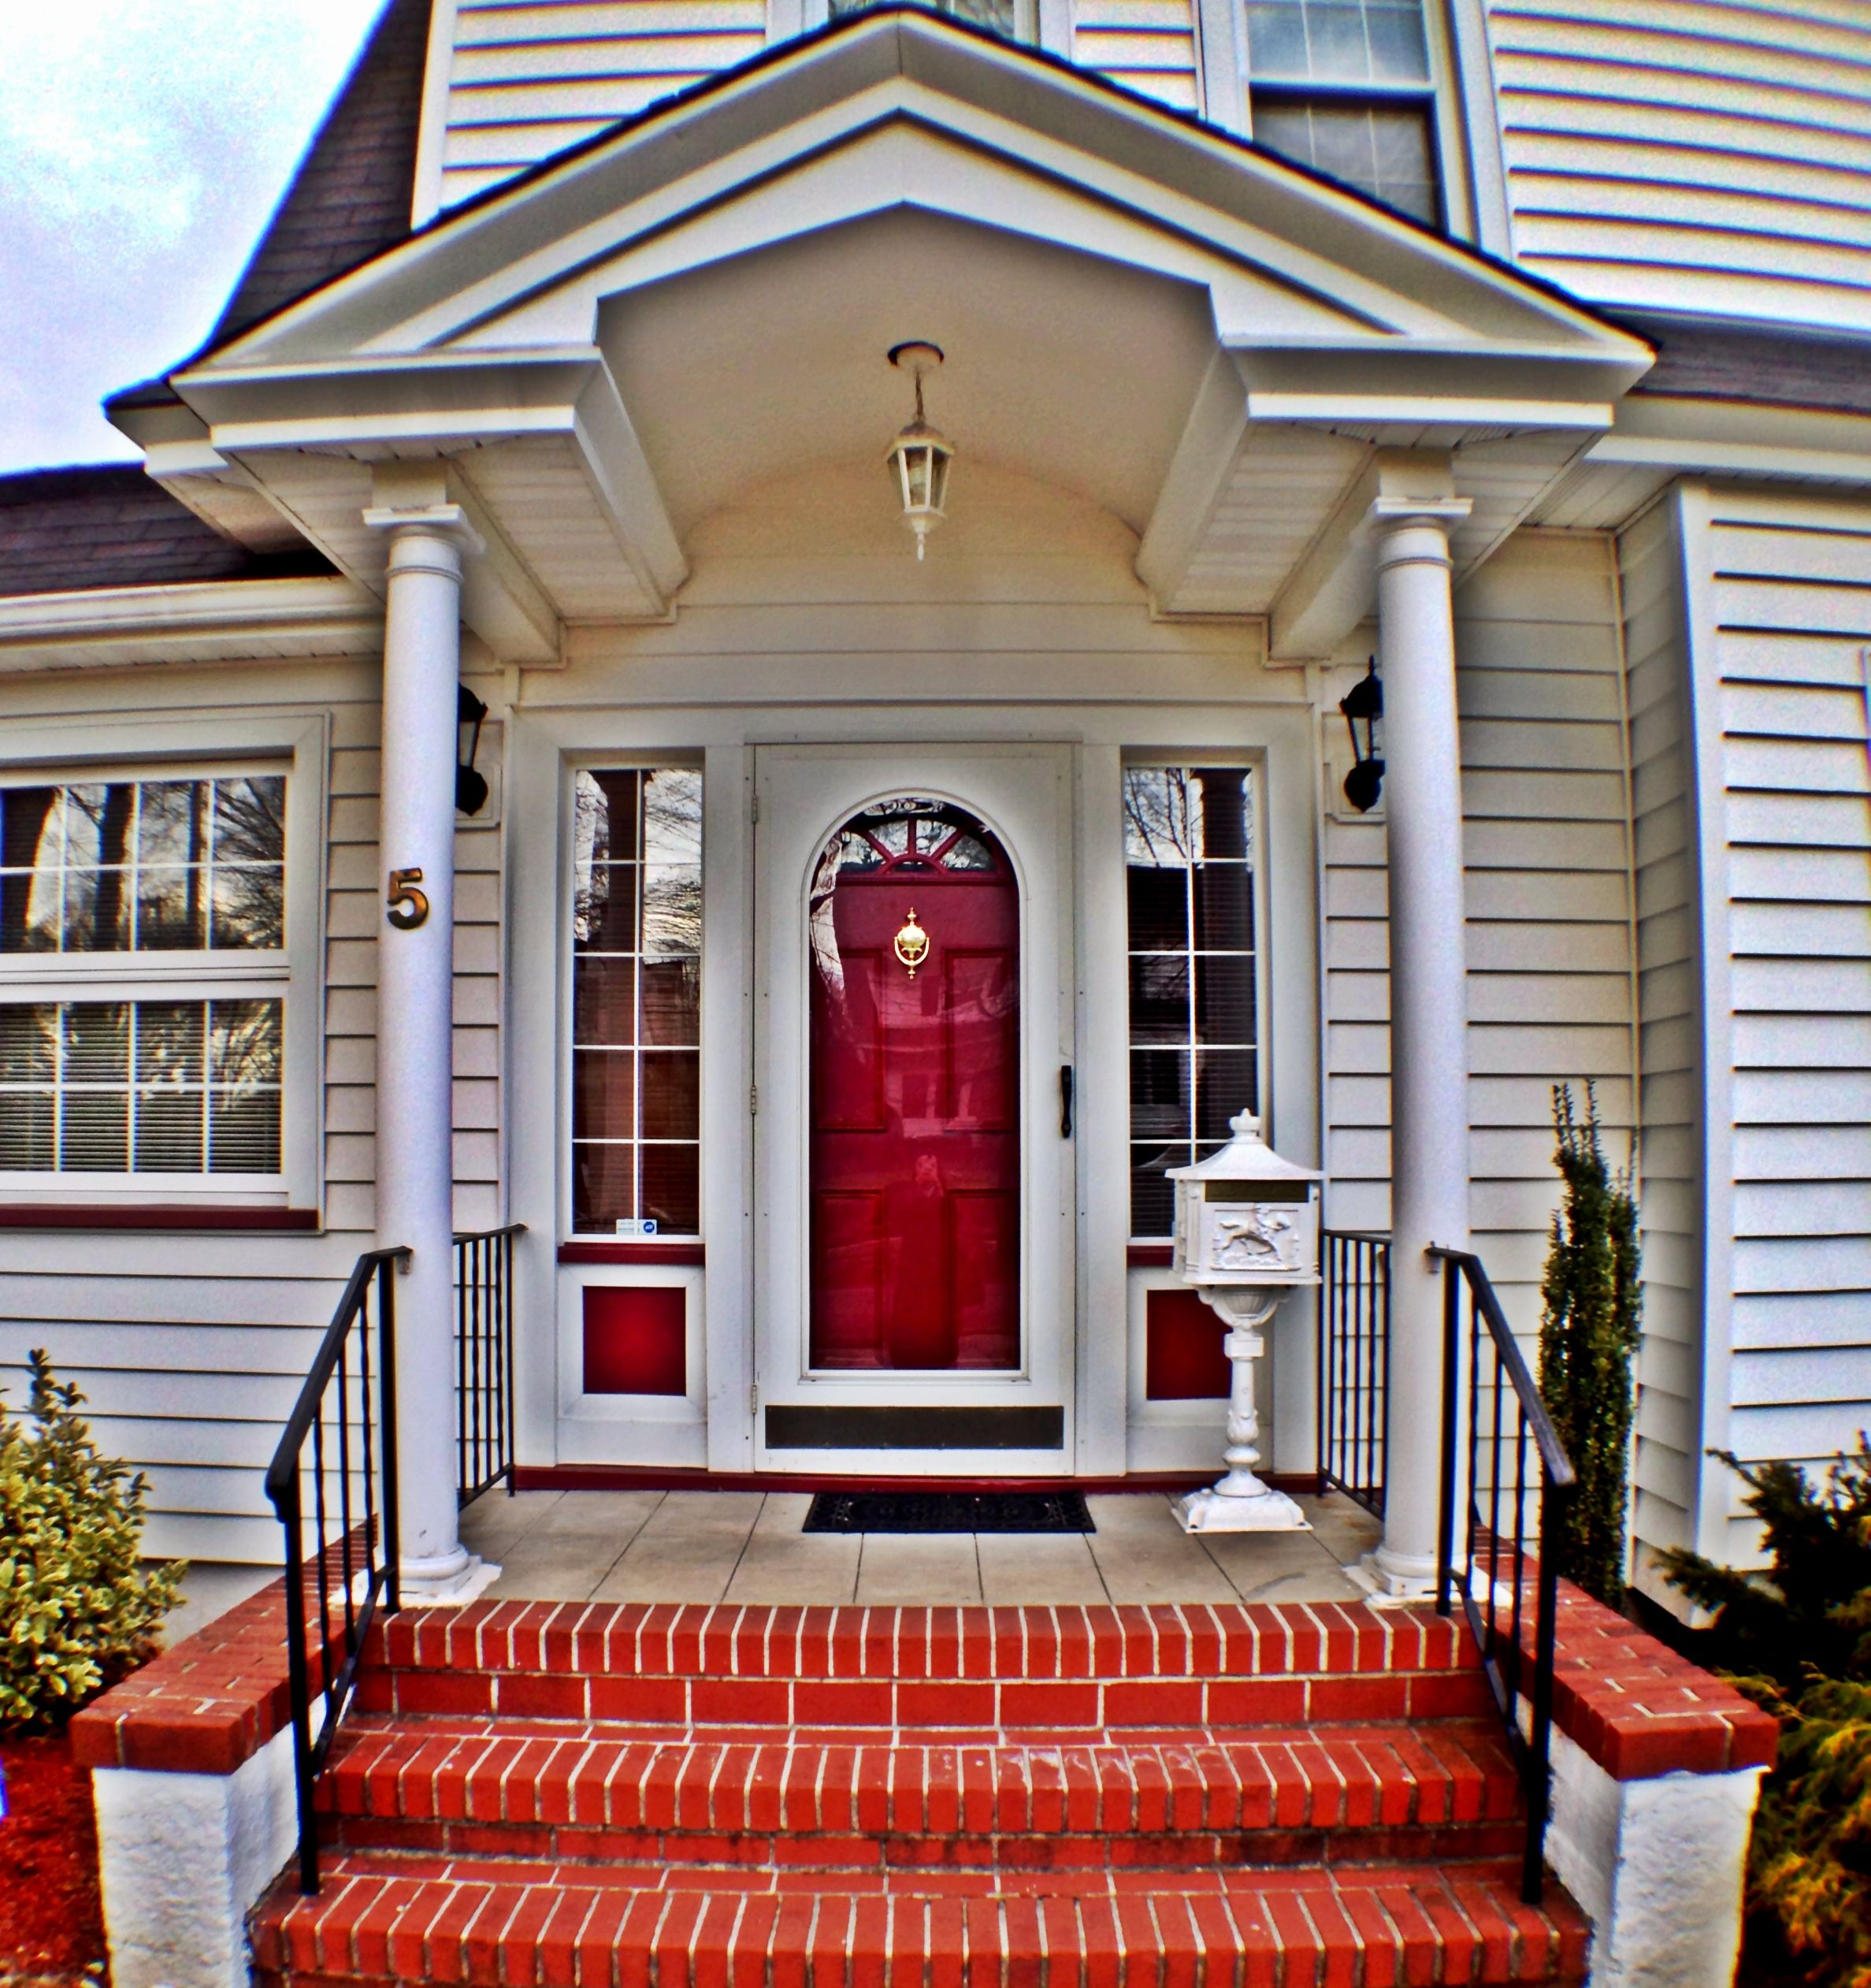 Do you know the significance of a red doorthe symbolism of a red do you know the significance of a red doorthe symbolism of a red door biocorpaavc Images